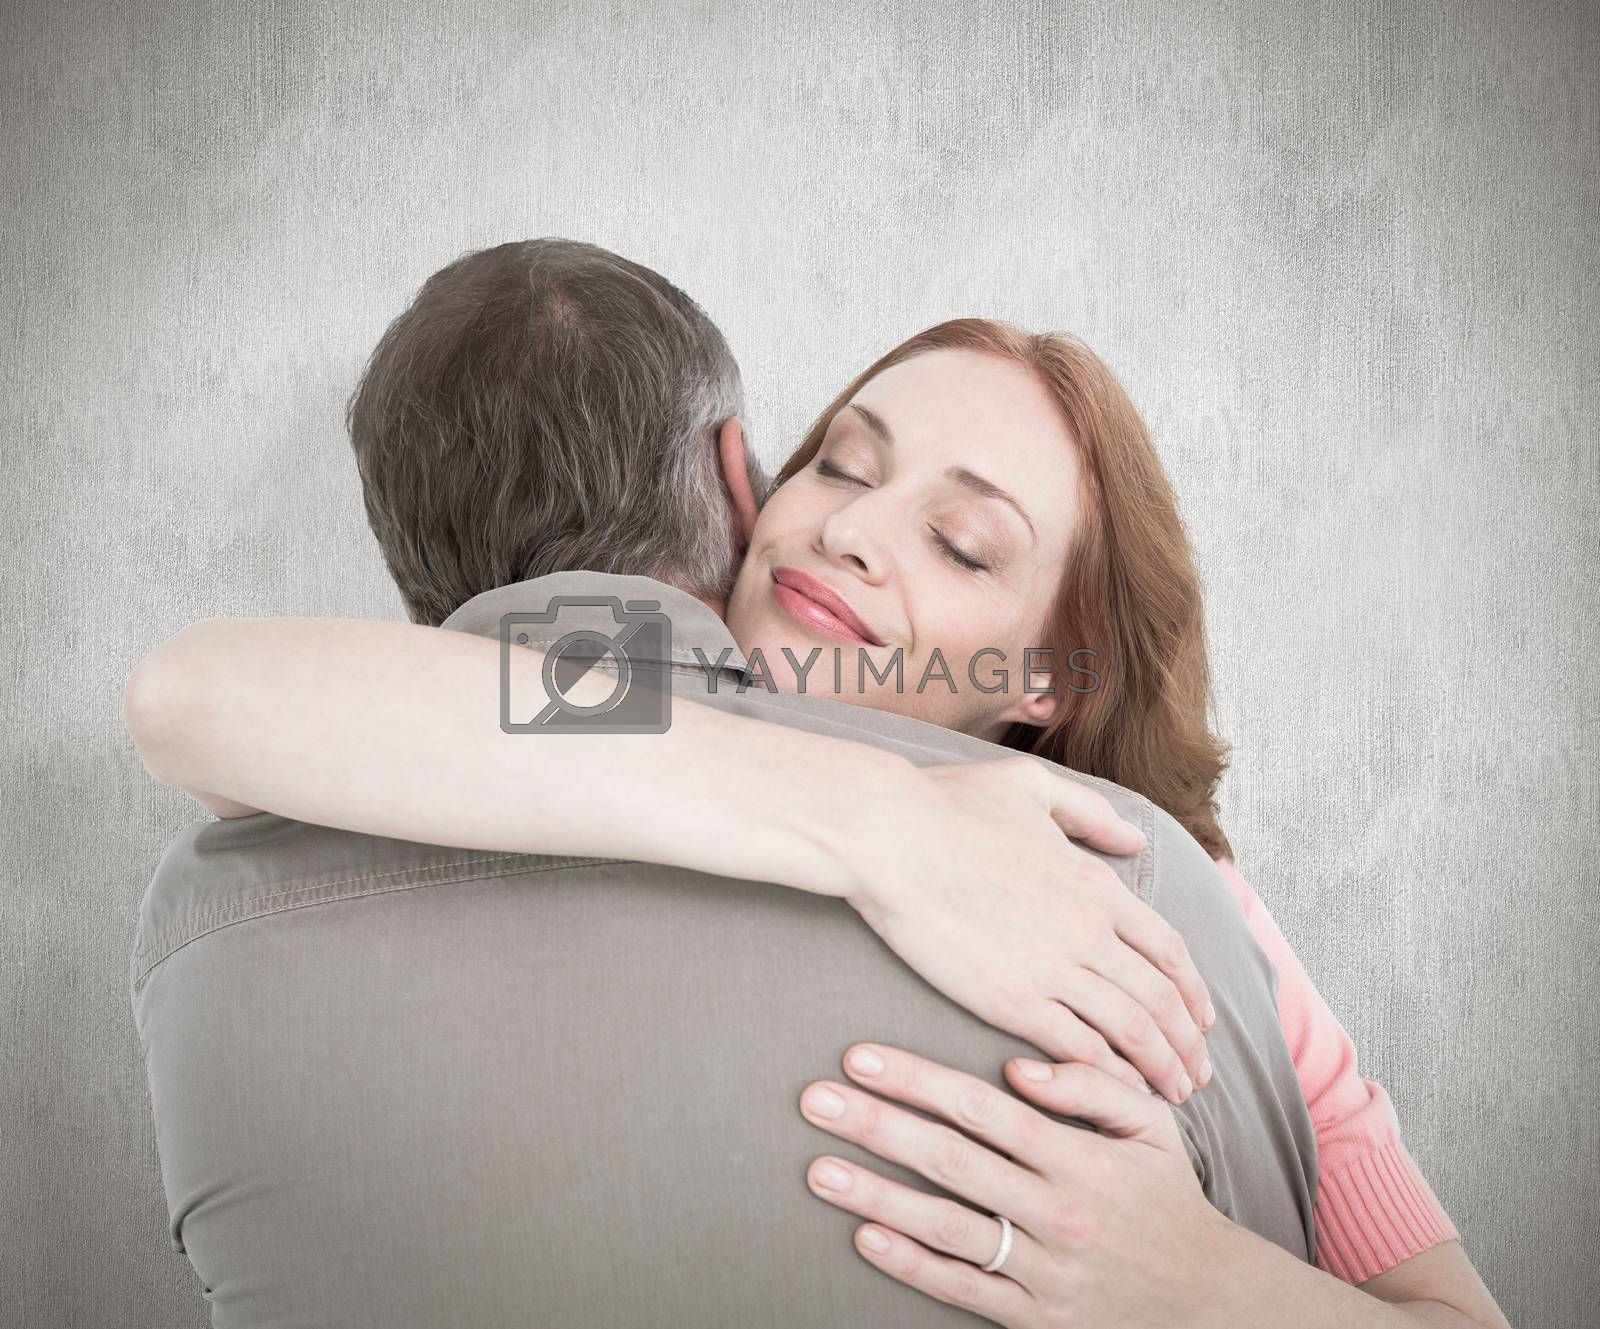 Casual couple hugging each other against white background